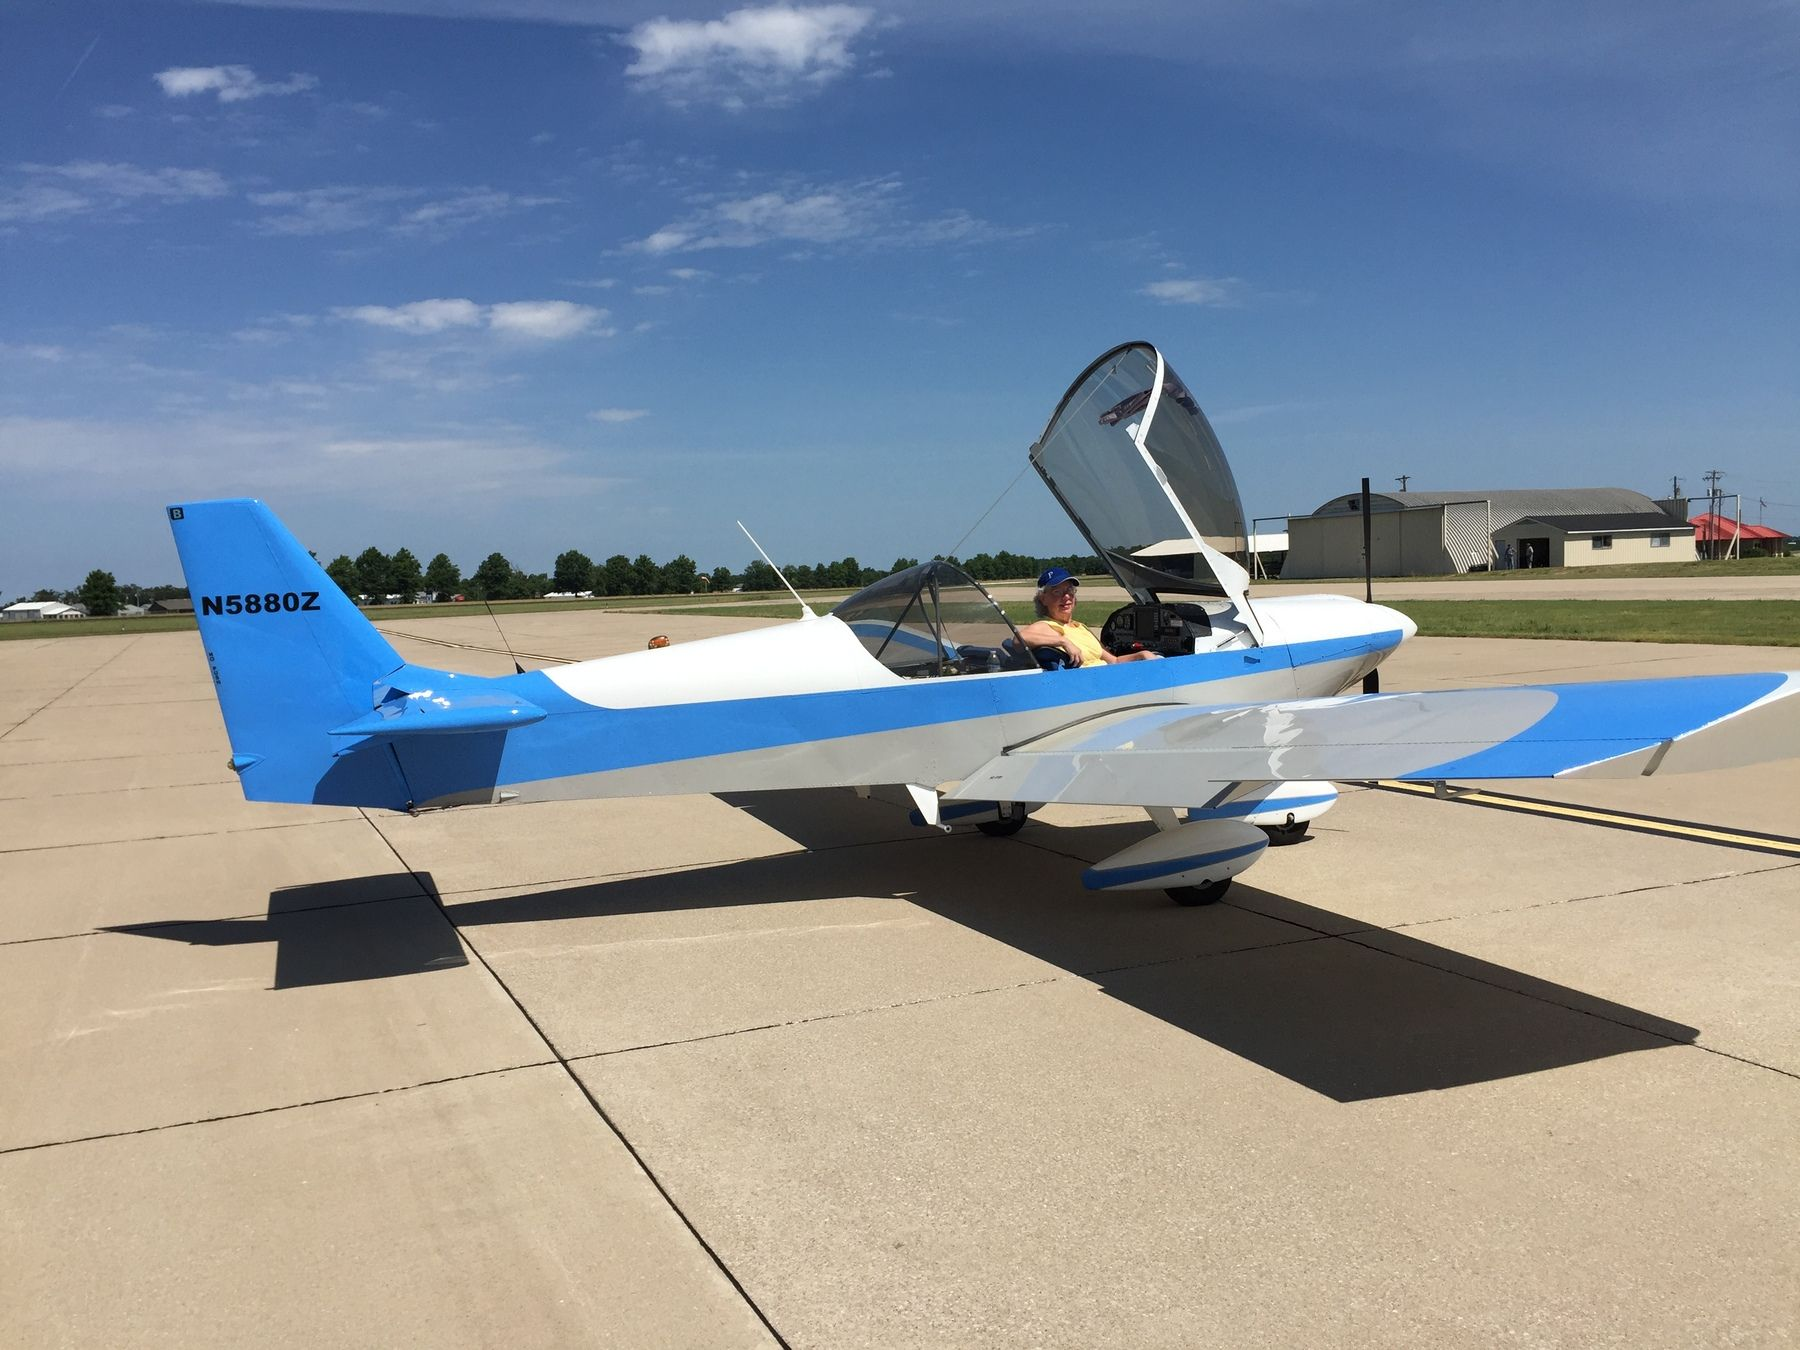 2010 Zenith Zodiac 650xlb For Sale In Keos Neosho Mo Usa Www Airplanemart Com Aircraft For Sale Experimental Ho Airplane For Sale General Aviation Neosho